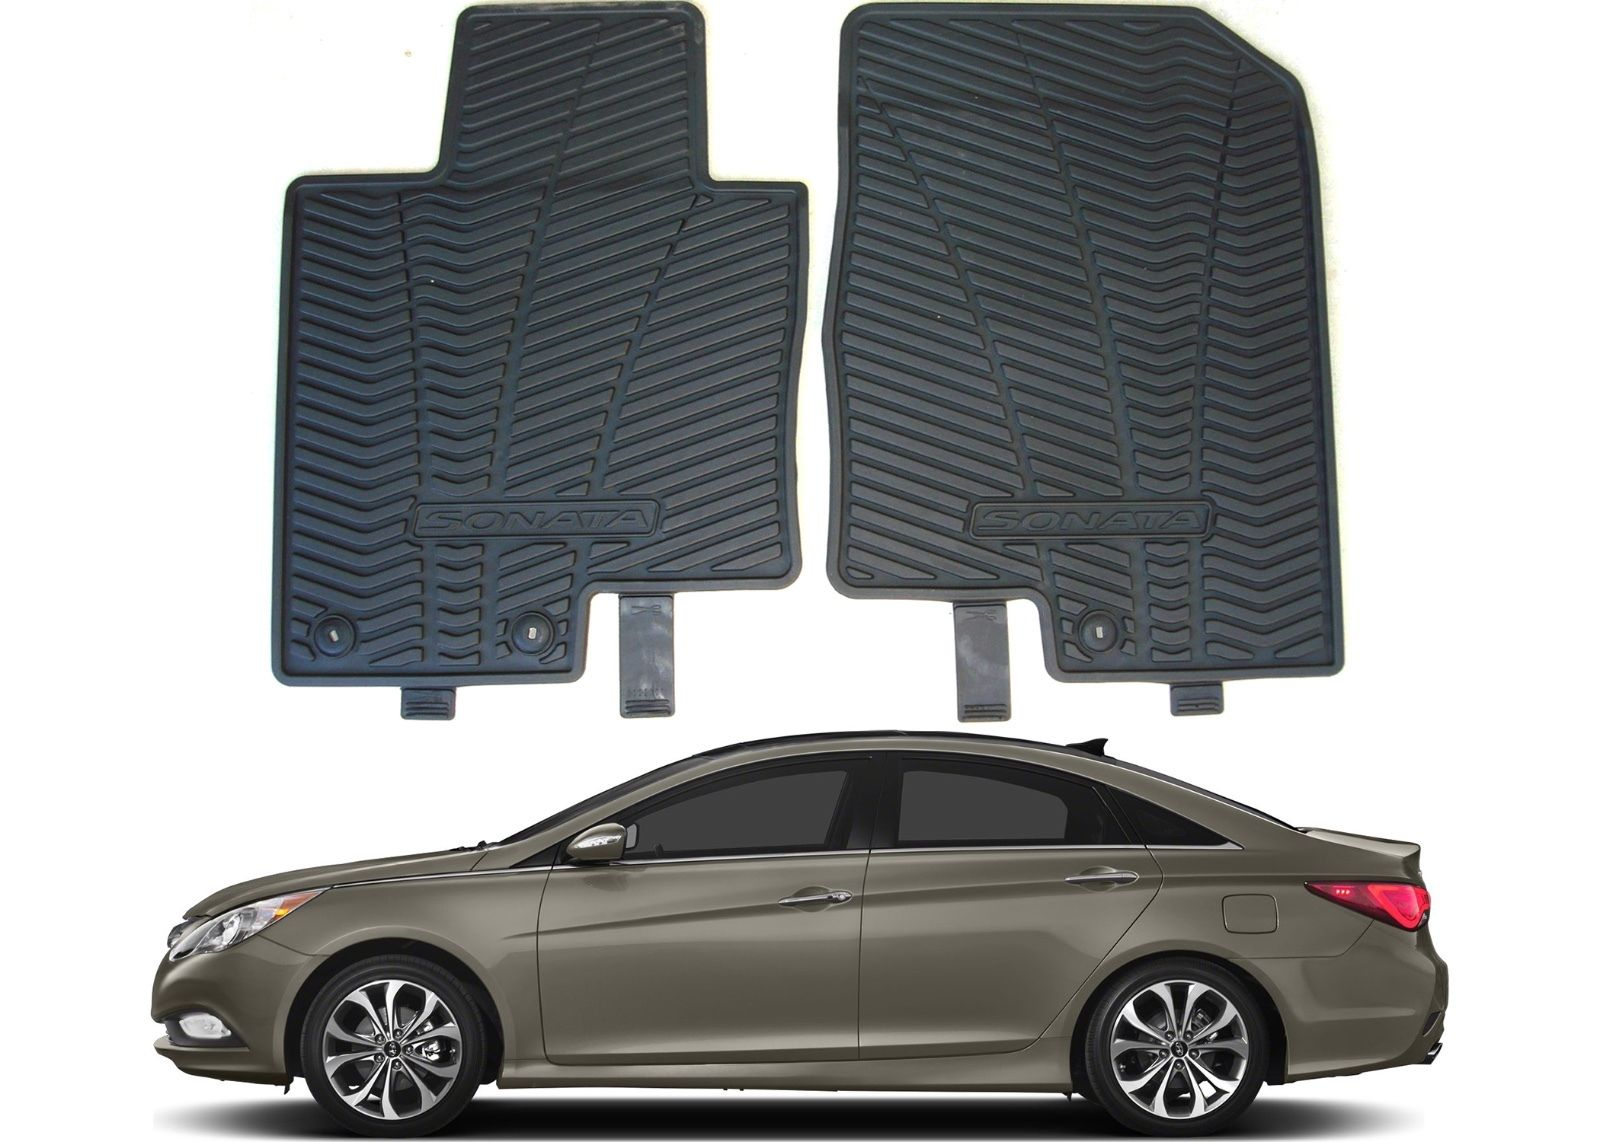 Awesome Genuine Oem Front All Weather Floor Mats For 2017 Hyundai Sonata New Usa 2018